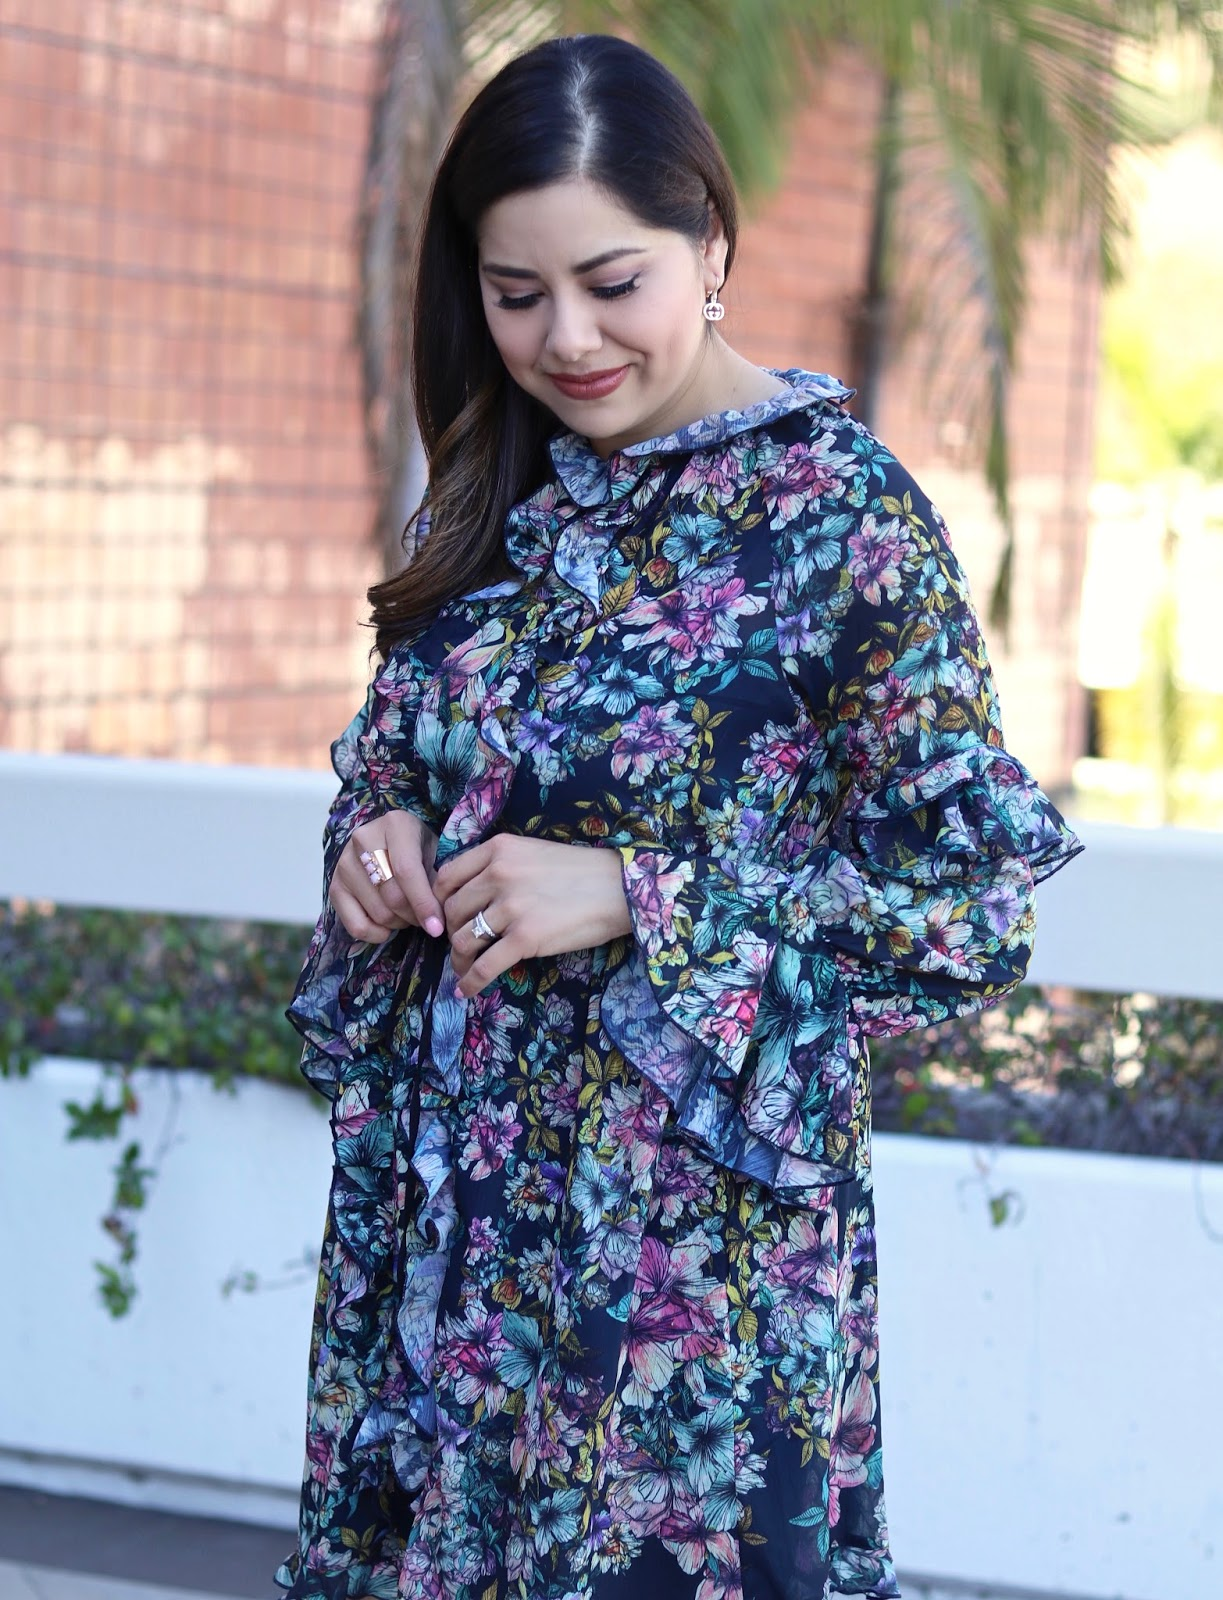 Neiman Marcus Fashion Valley, Kendra Scott bracelet, mexican blogger in san diego